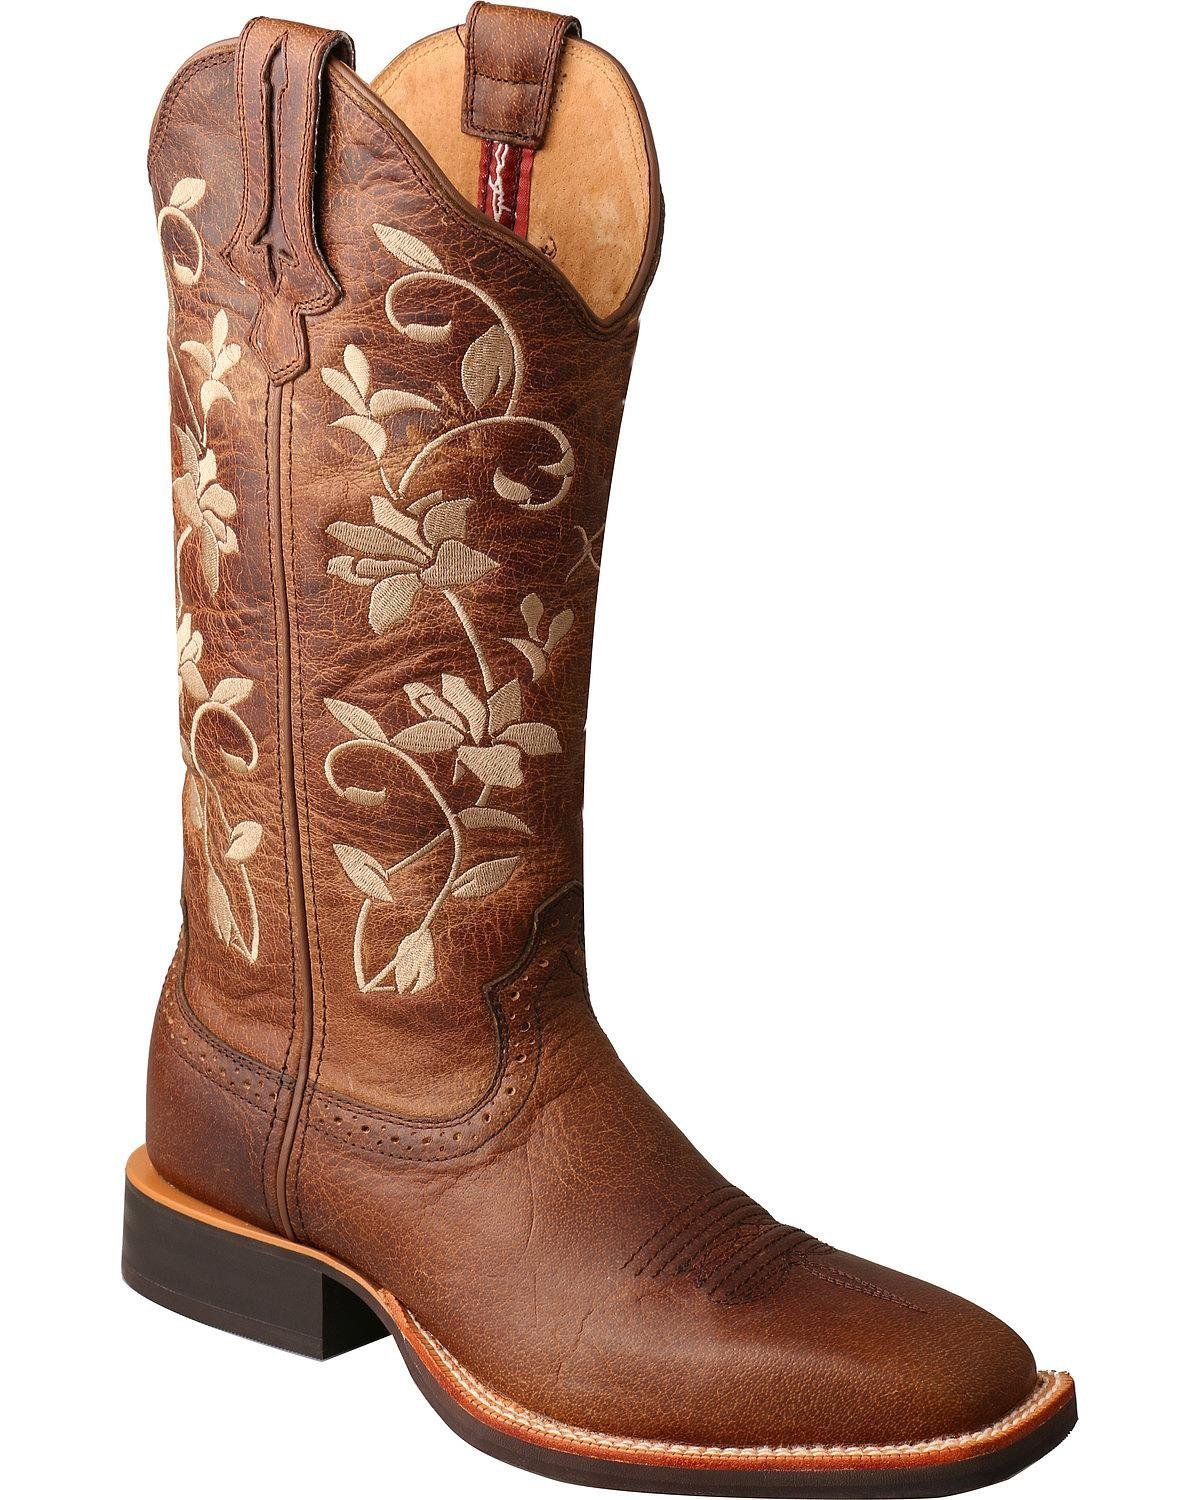 Twisted X Women's Floral Ruff Stock Cowgirl Boot Square Toe - Wrs0025 B01L3X9X3C 7.5 B(M) US|Brown